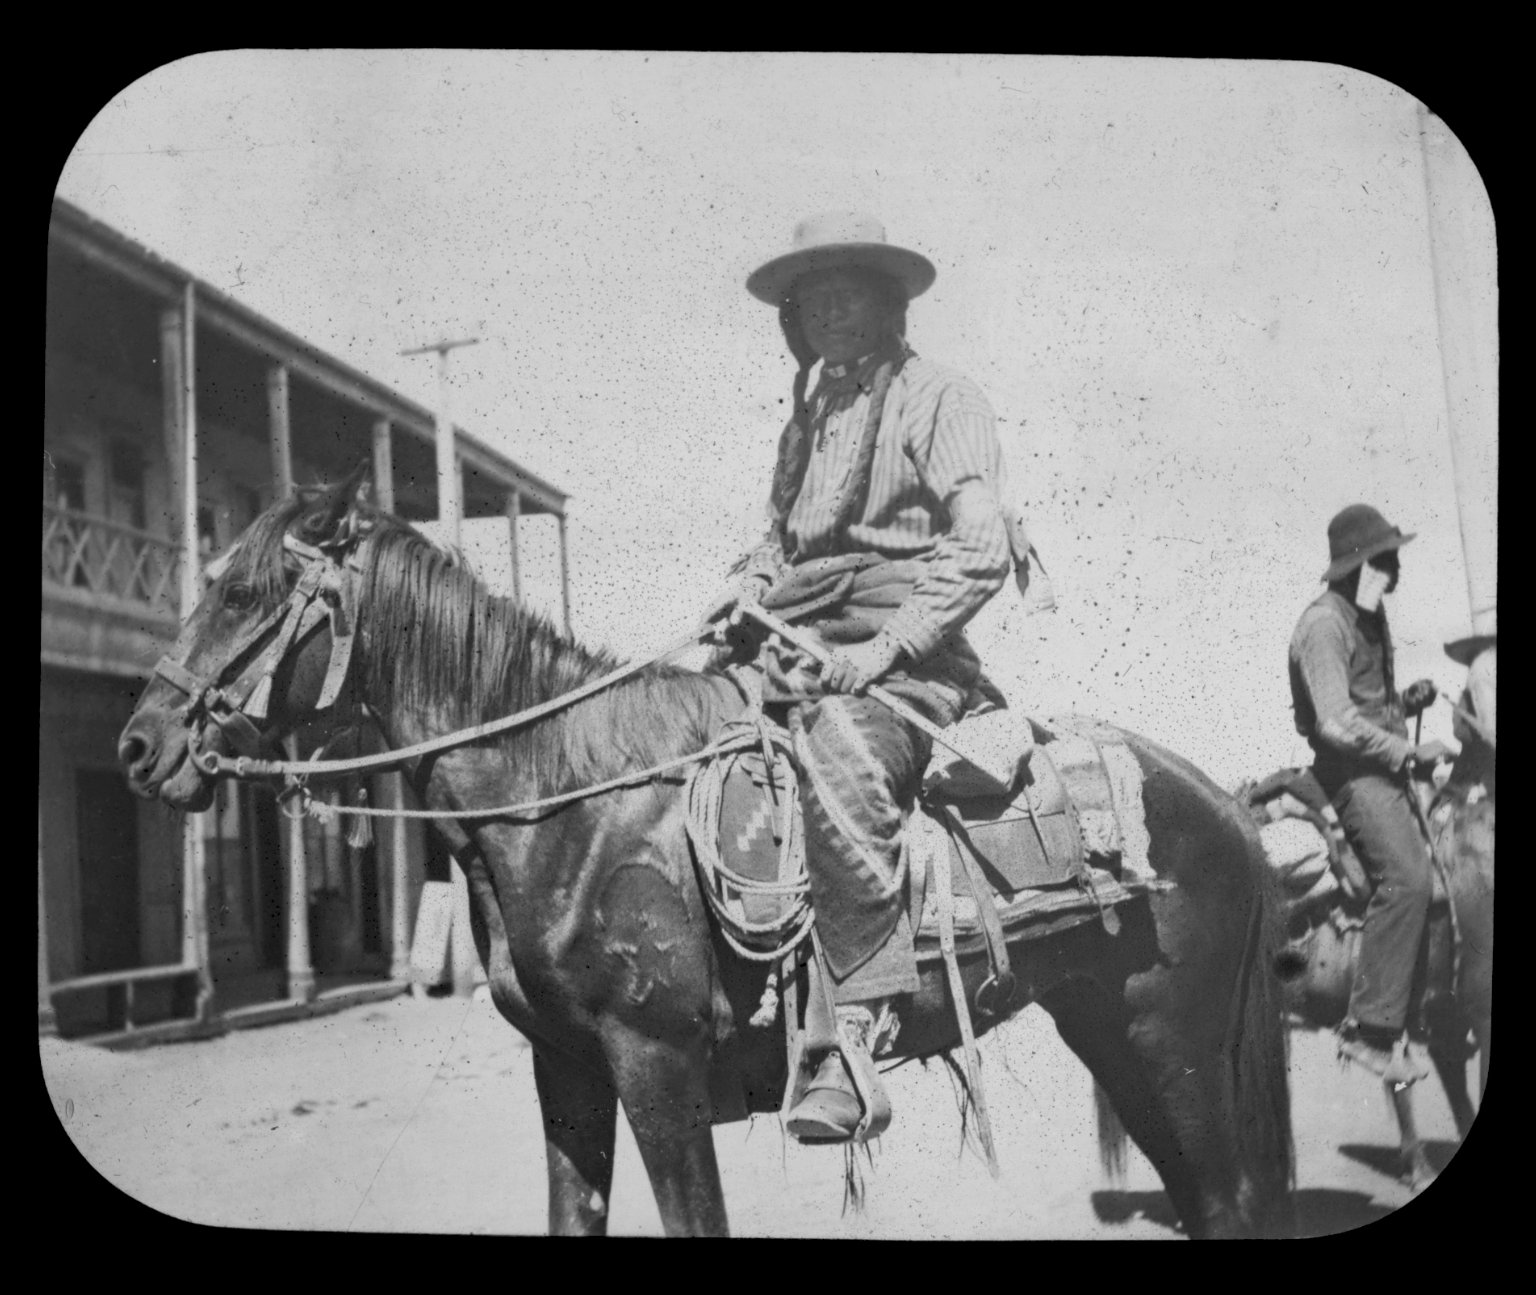 Native American man on horseback